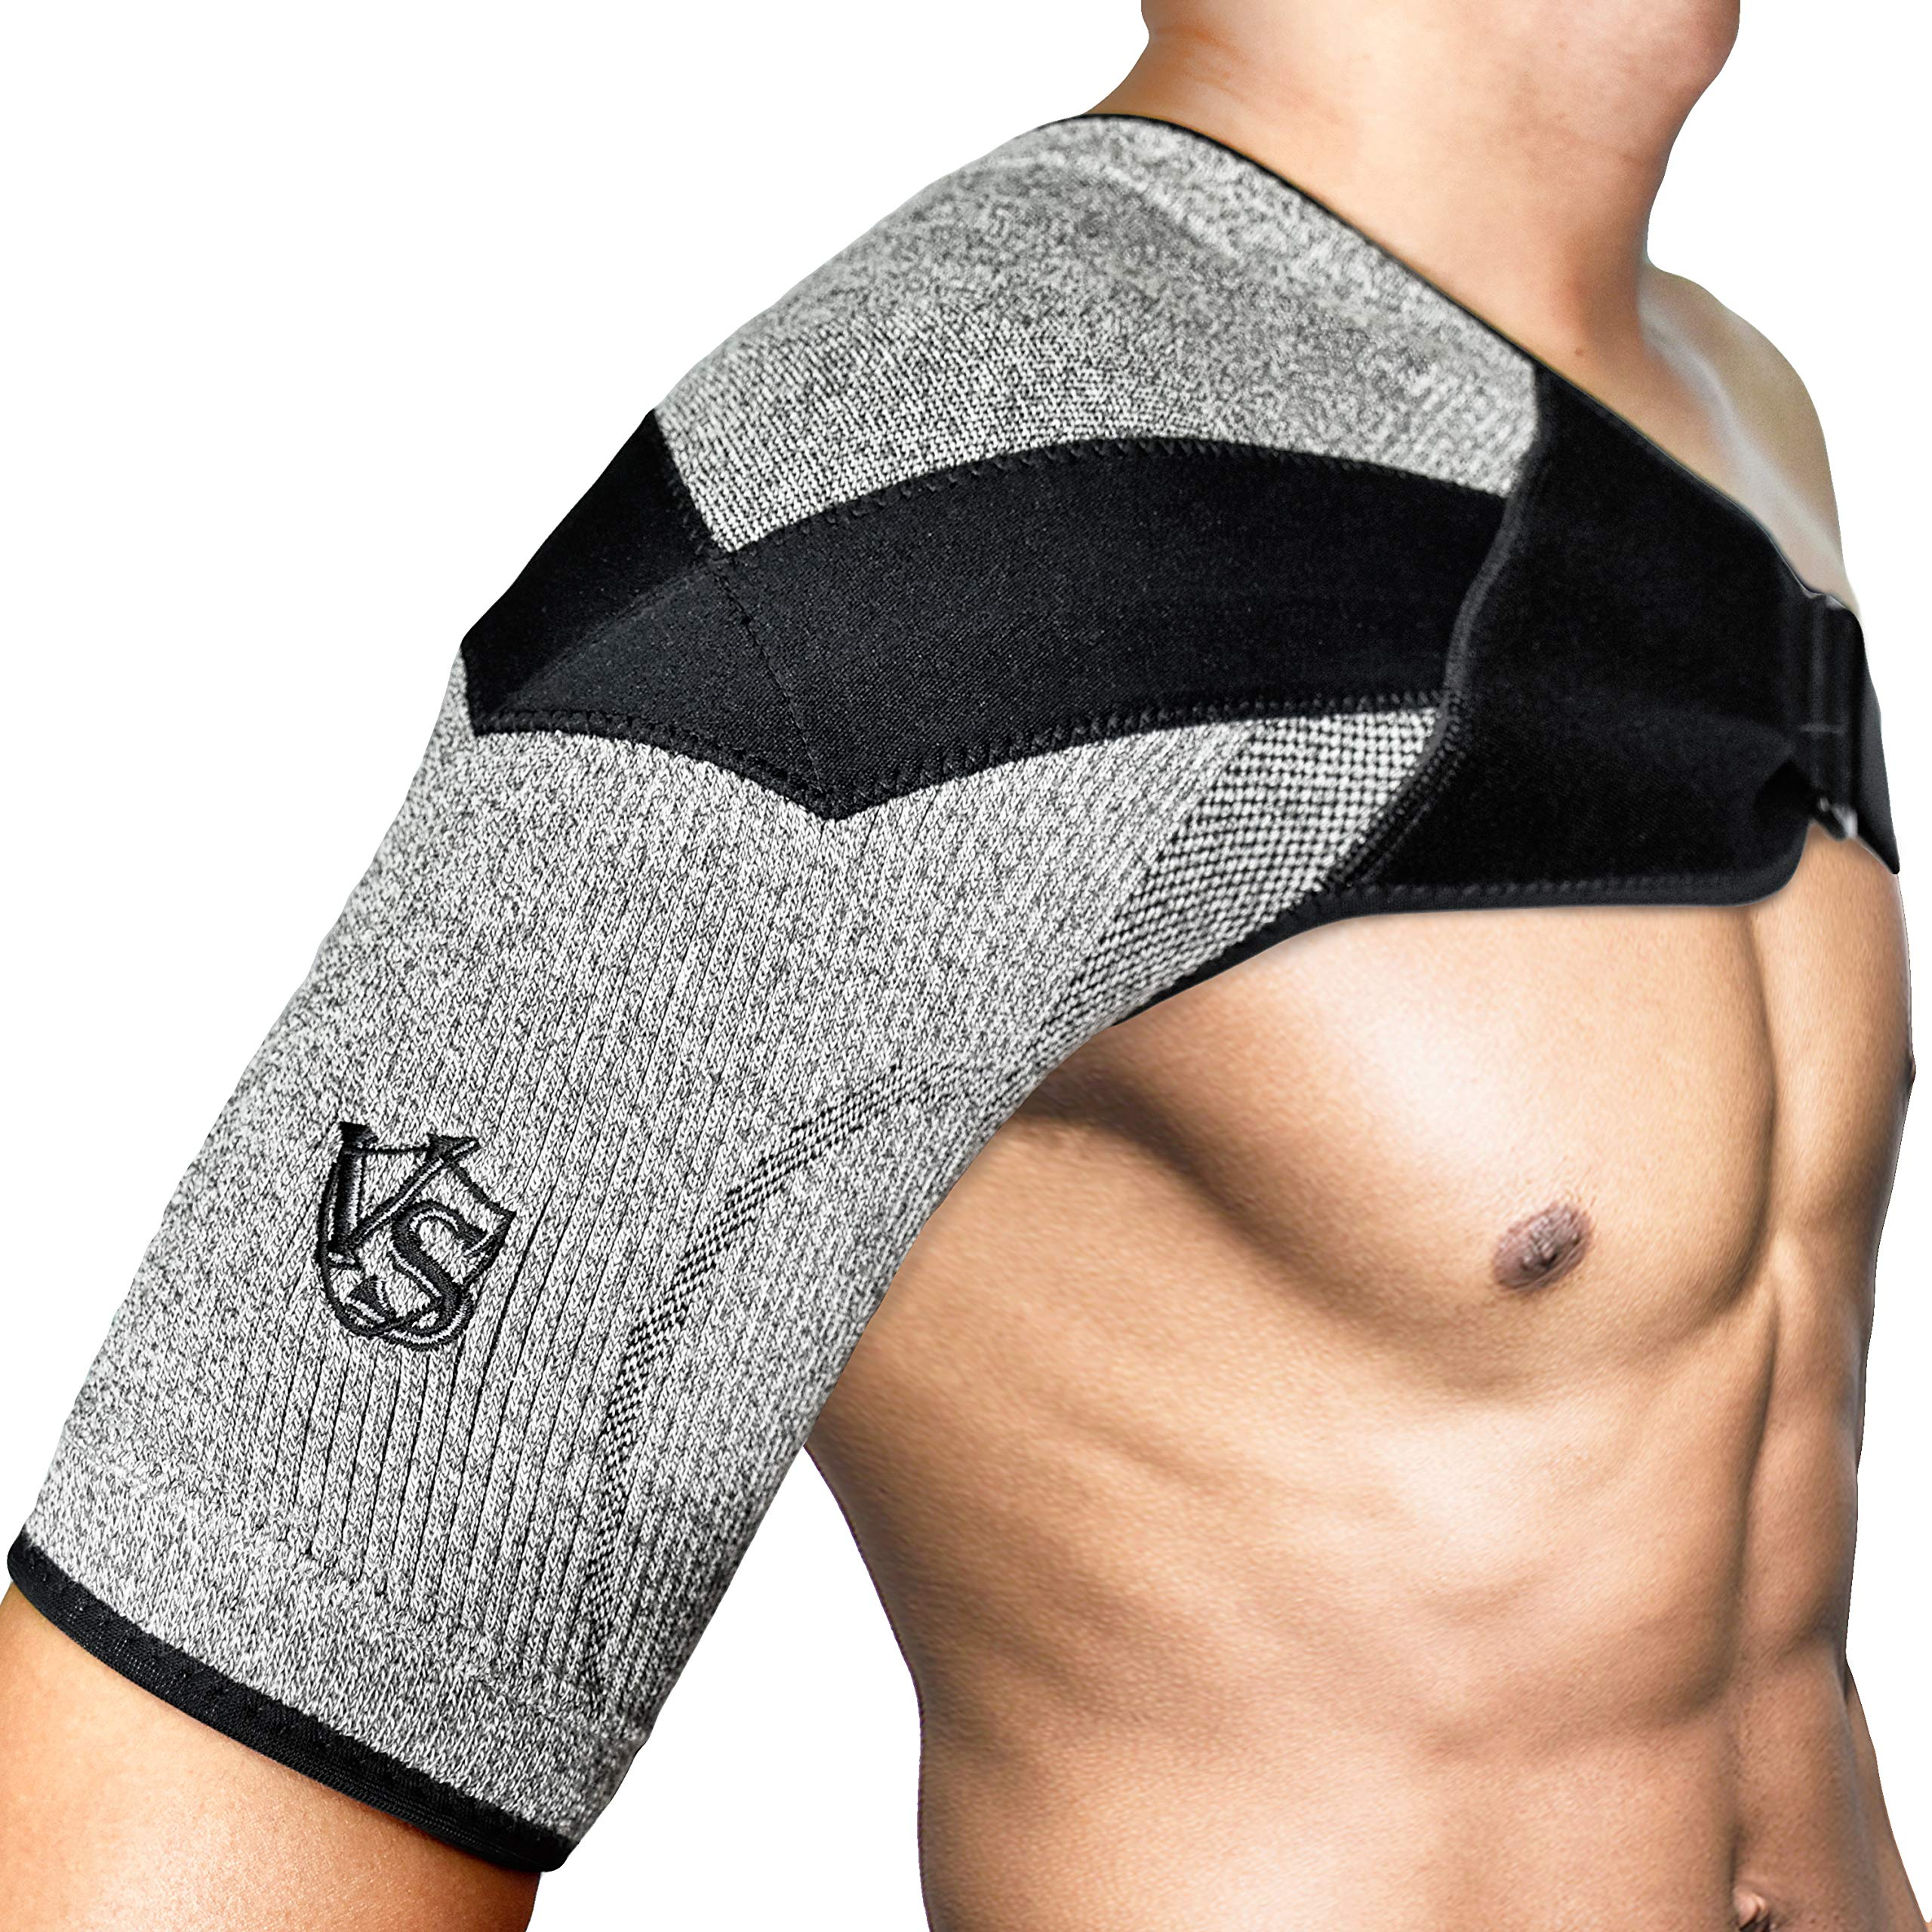 Vital Salveo-Shoulder Compression Brace with Support,Stability,Breathable and Light for Shoulder Pain and Prevent Injuries,Dislocated AC Joint,Frozen Pain,Rotator Cuff,Tendinitis,Labrum Tear-M(1PC) by Vital Salveo